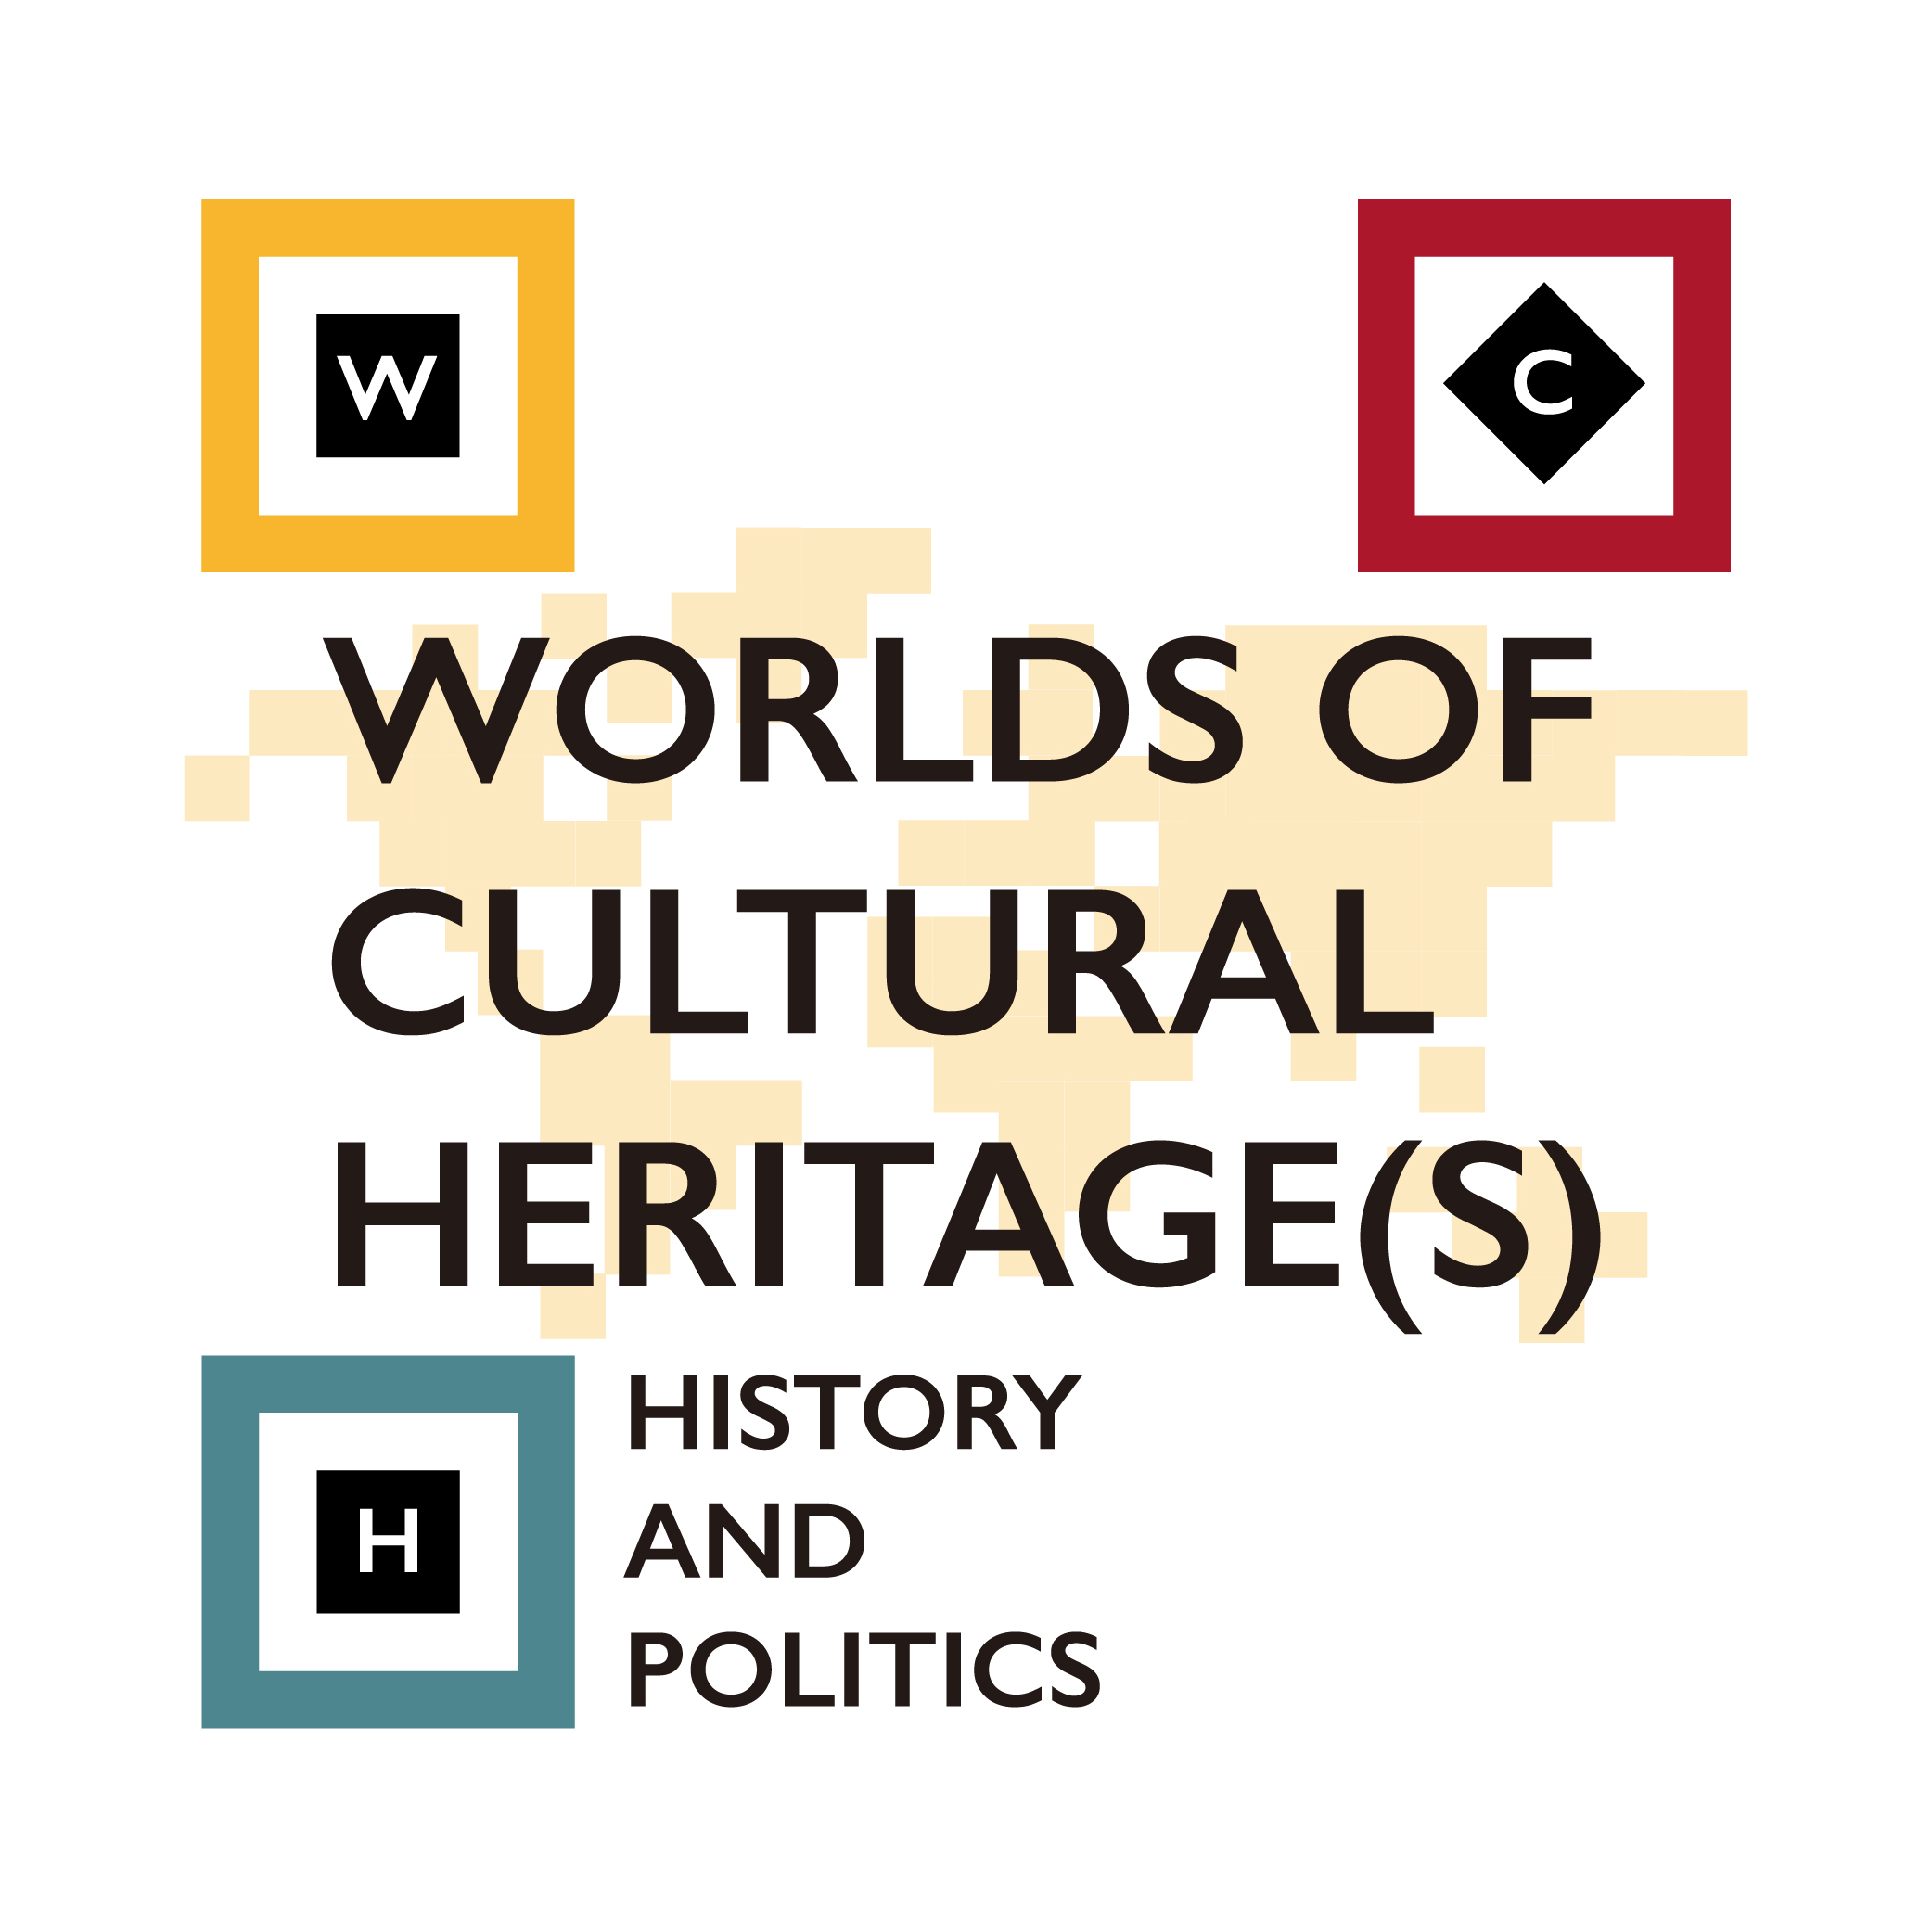 Worlds of Cultural Heritage(s) [International conference<br />